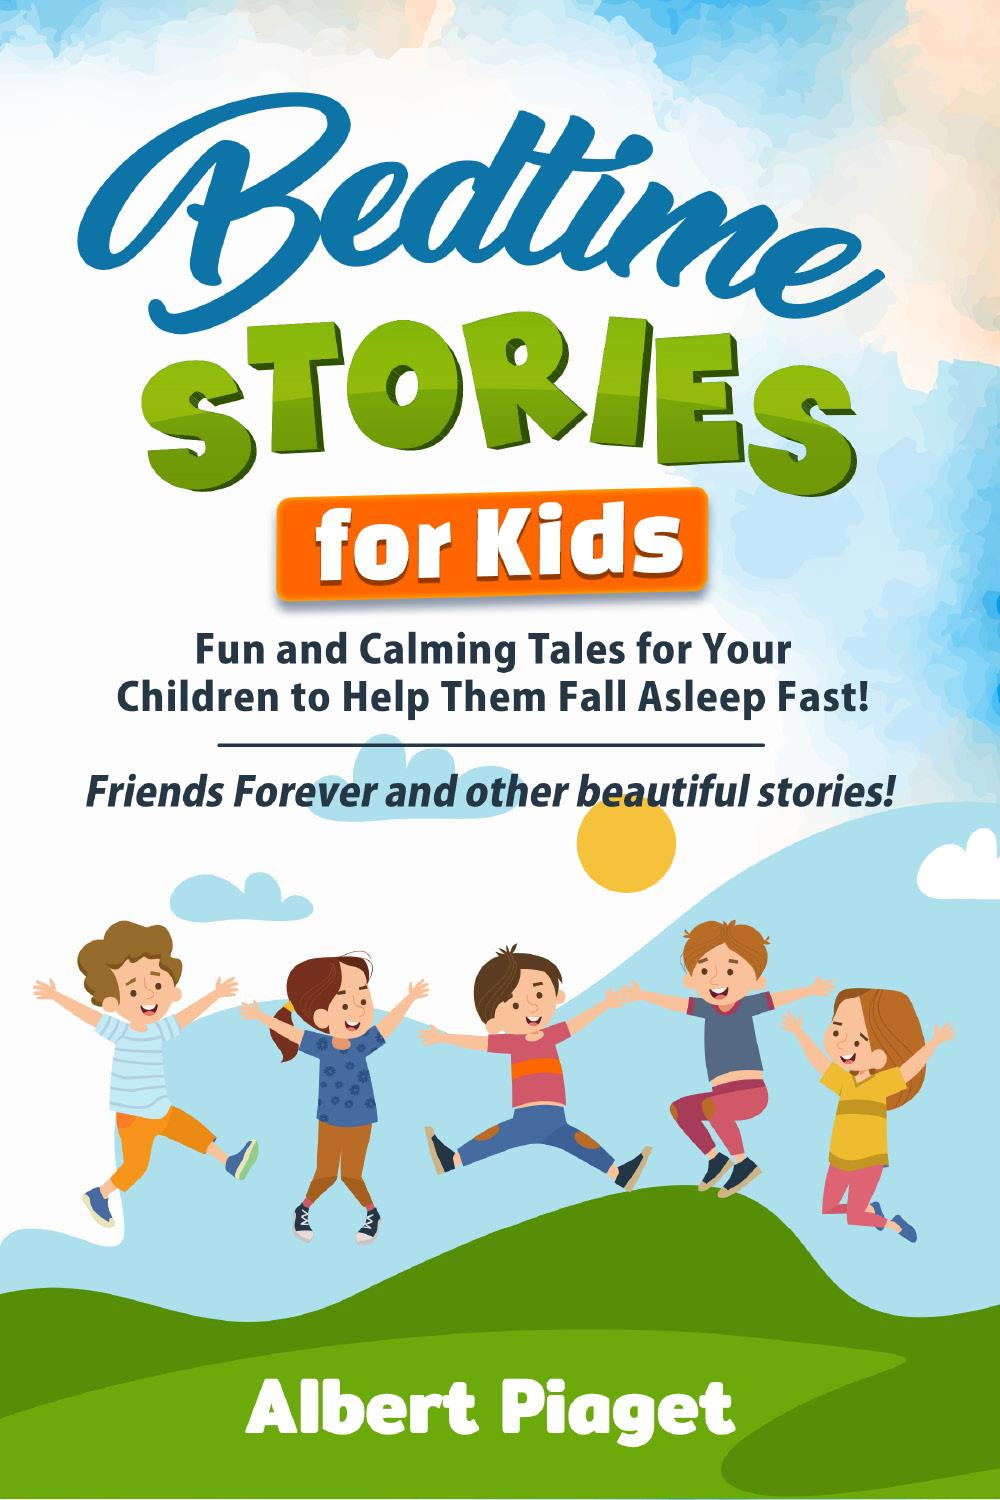 Bedtime Stories for Kids. Fun and Calming Tales for Your Children to Help Them Fall Asleep Fast! Friends Forever and other beautiful stories!